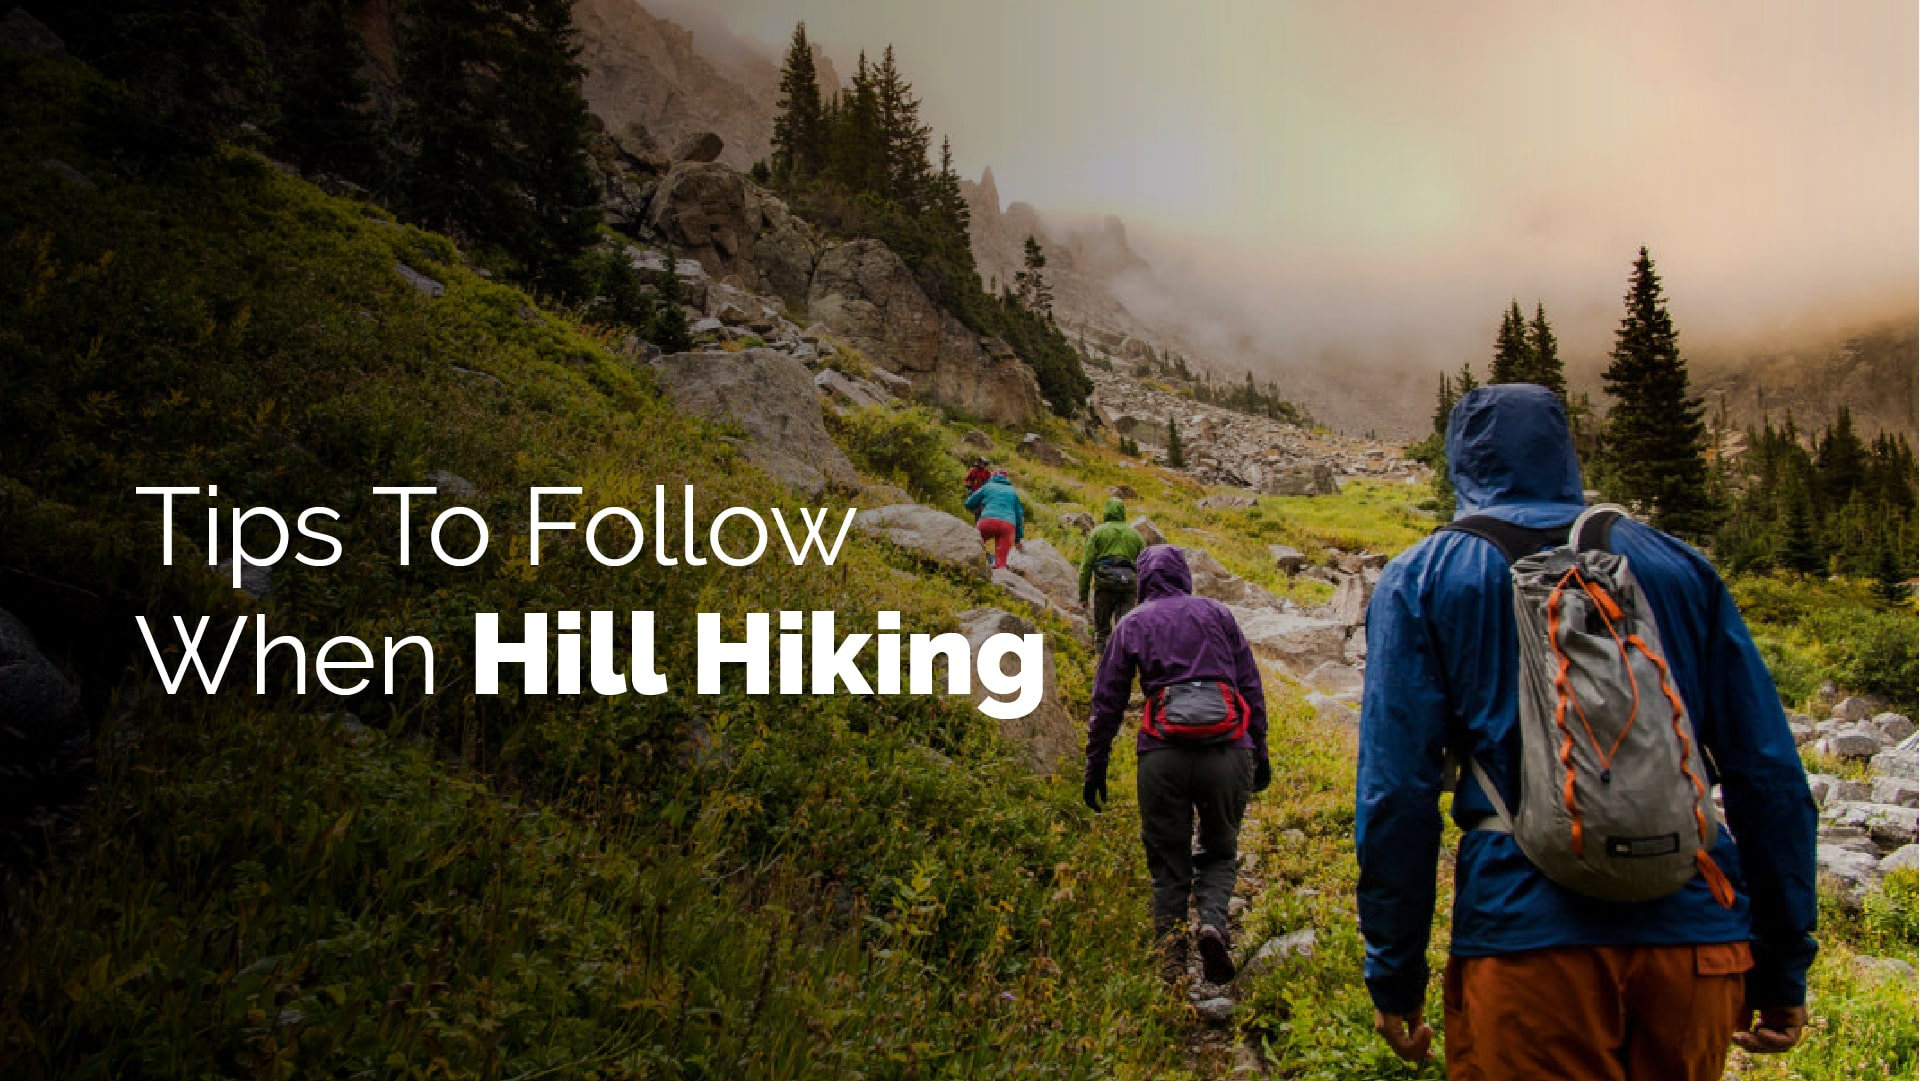 Tips To Follow When Hill Hiking